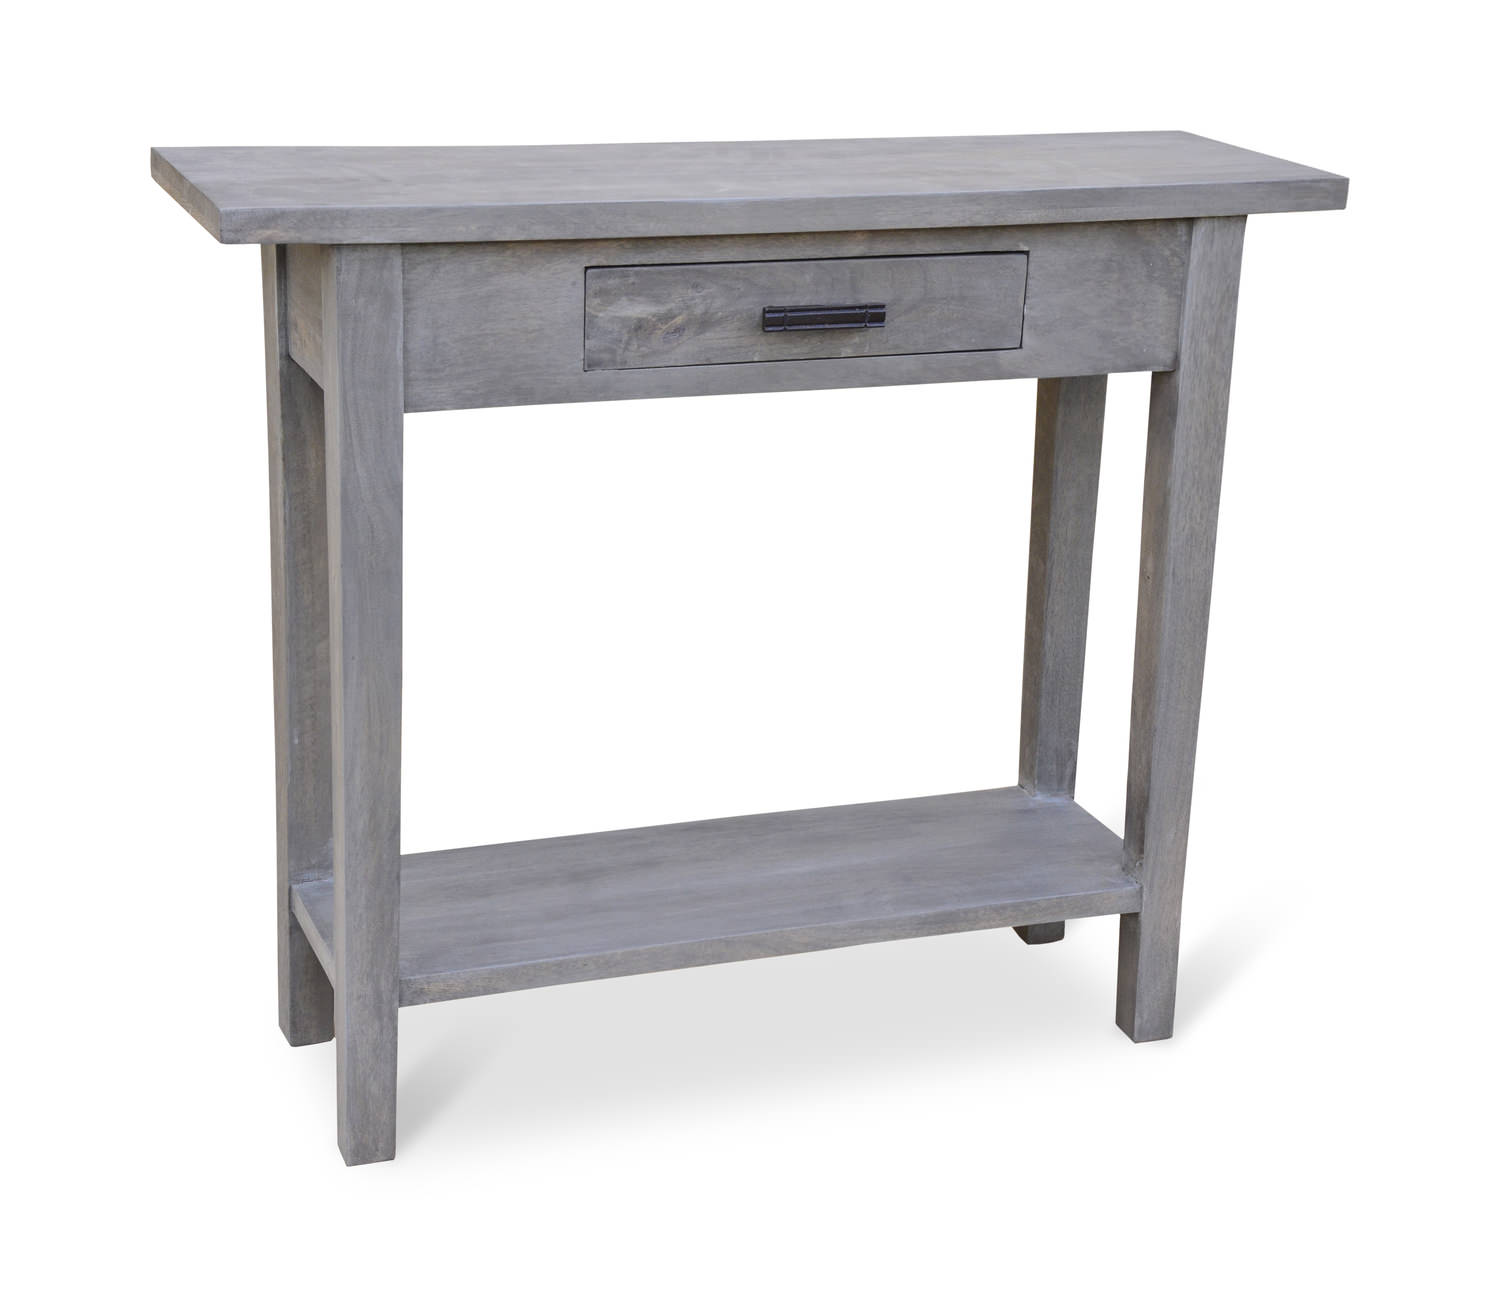 harper console table hom furniture round wood and metal accent grey oriental ceramic lamps rustic dining lucite chairs nesting tables teak garden modern home drop leaf with chair